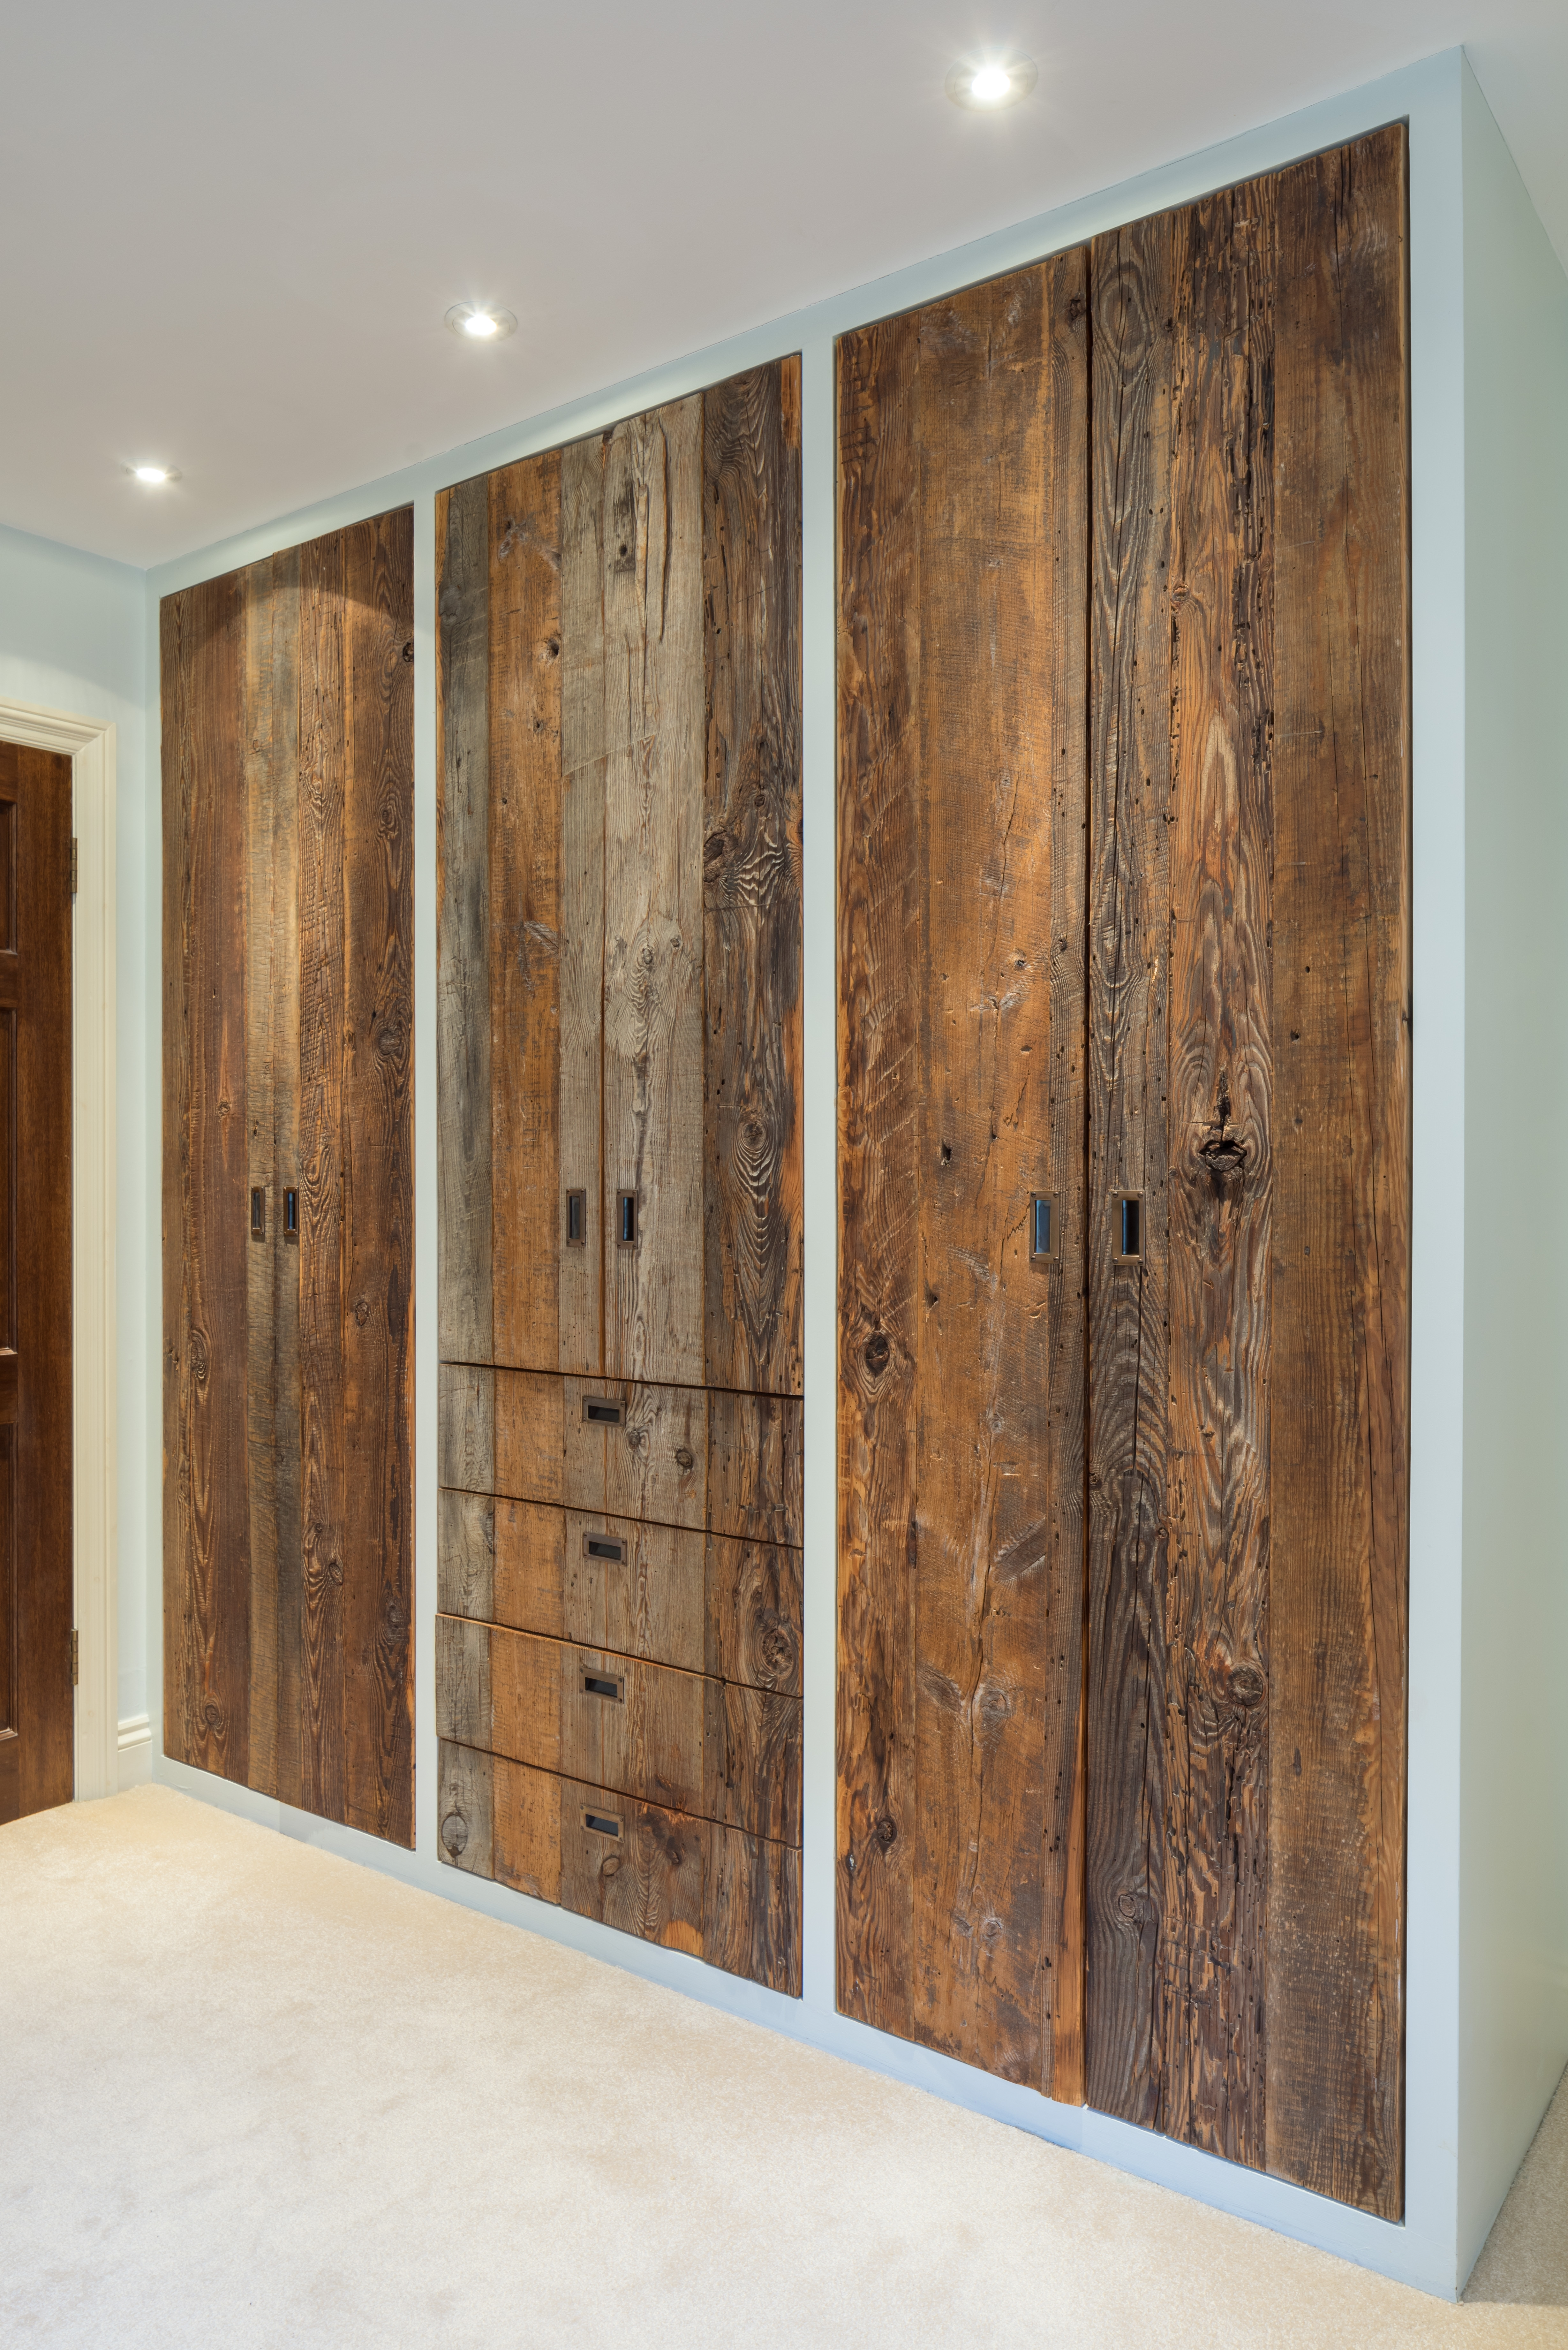 Reclaimed Wood Wardrobes – Brandler London Archives With Regard To Current Wood Wardrobes (View 3 of 15)